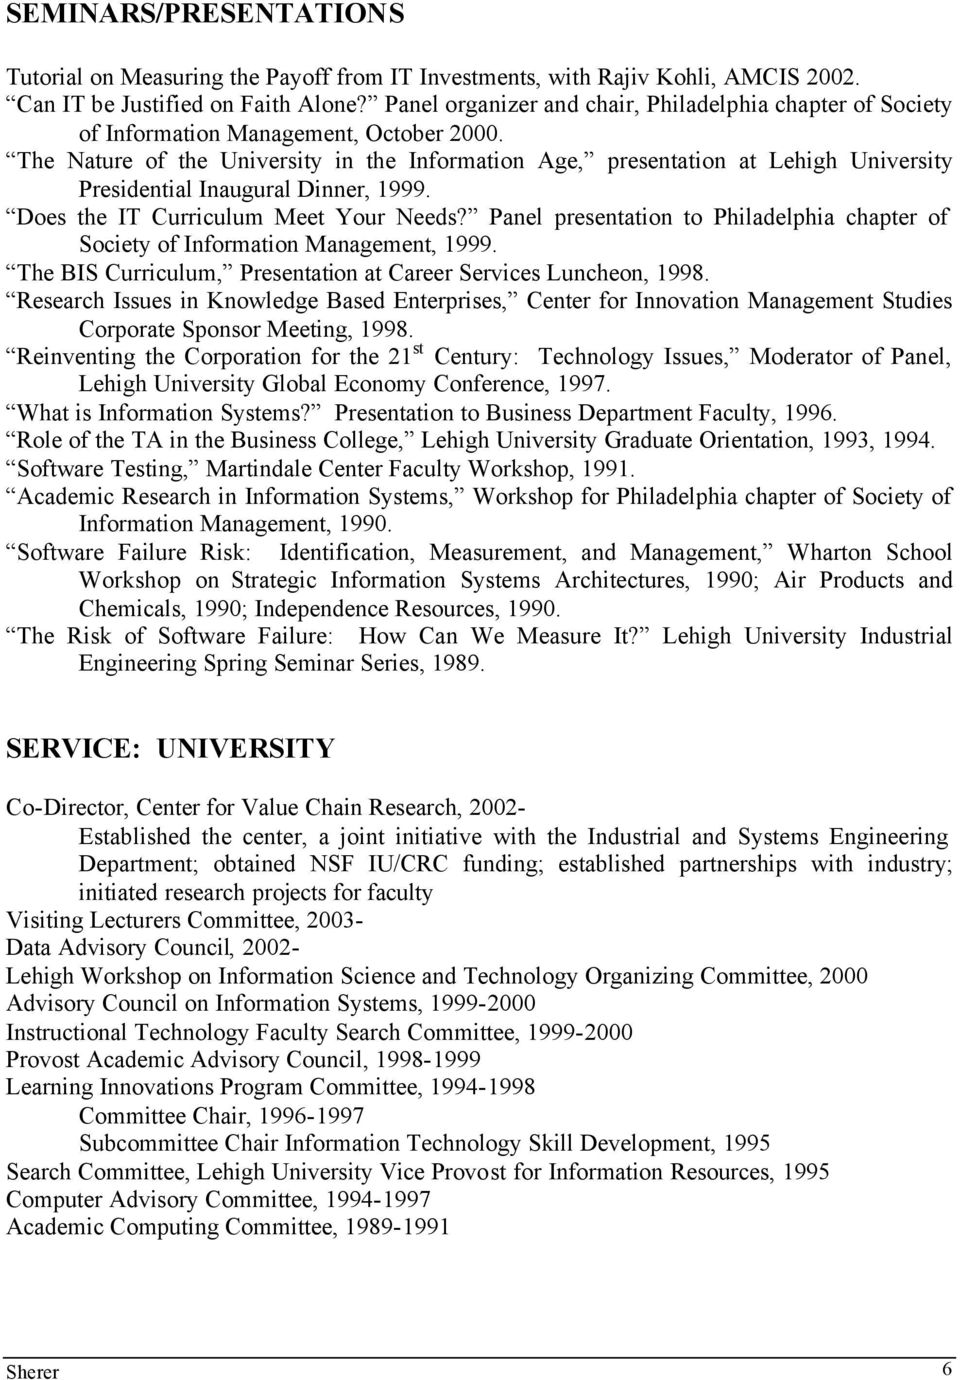 review of metaphysics dissertation contest Metaphysics metaontology  methodology in metaphysics methodology in metaphysics edited by frederique janssen-lauret  george allan - 2005 - review of metaphysics 58 (3):529 - 532  in the book he develops this thesis within the two-dimensional framework and also proposes a formal argument for it i argue that the two-dimensional.